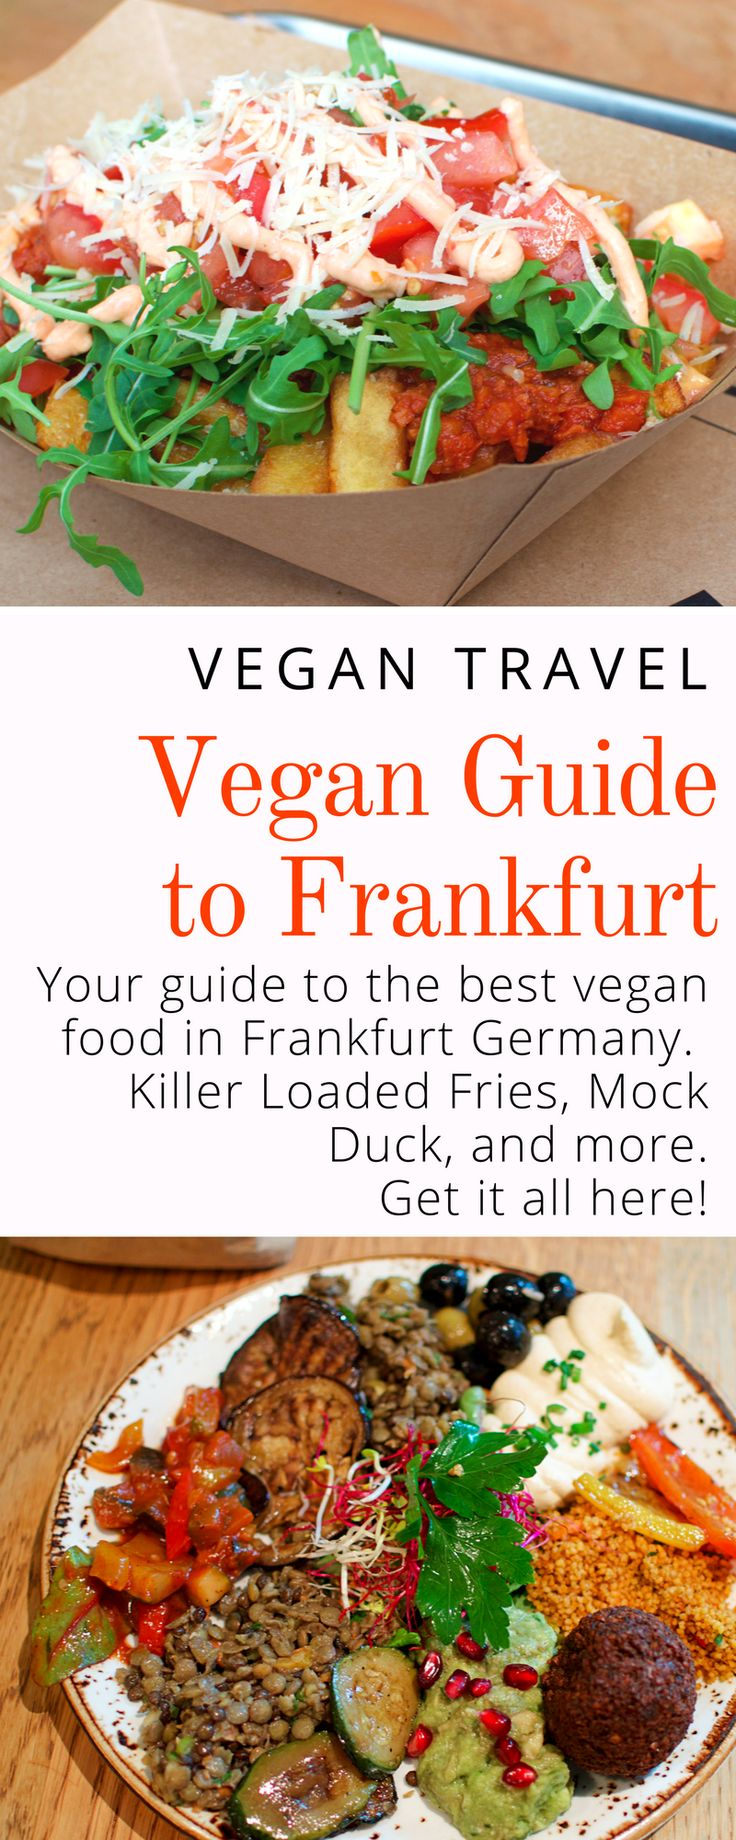 Vegan Guide to Frankfurt: Where to get the best vegan food the city has to offer. Click here now to start planning your vegan travel adventure in Frankfurt Germany!